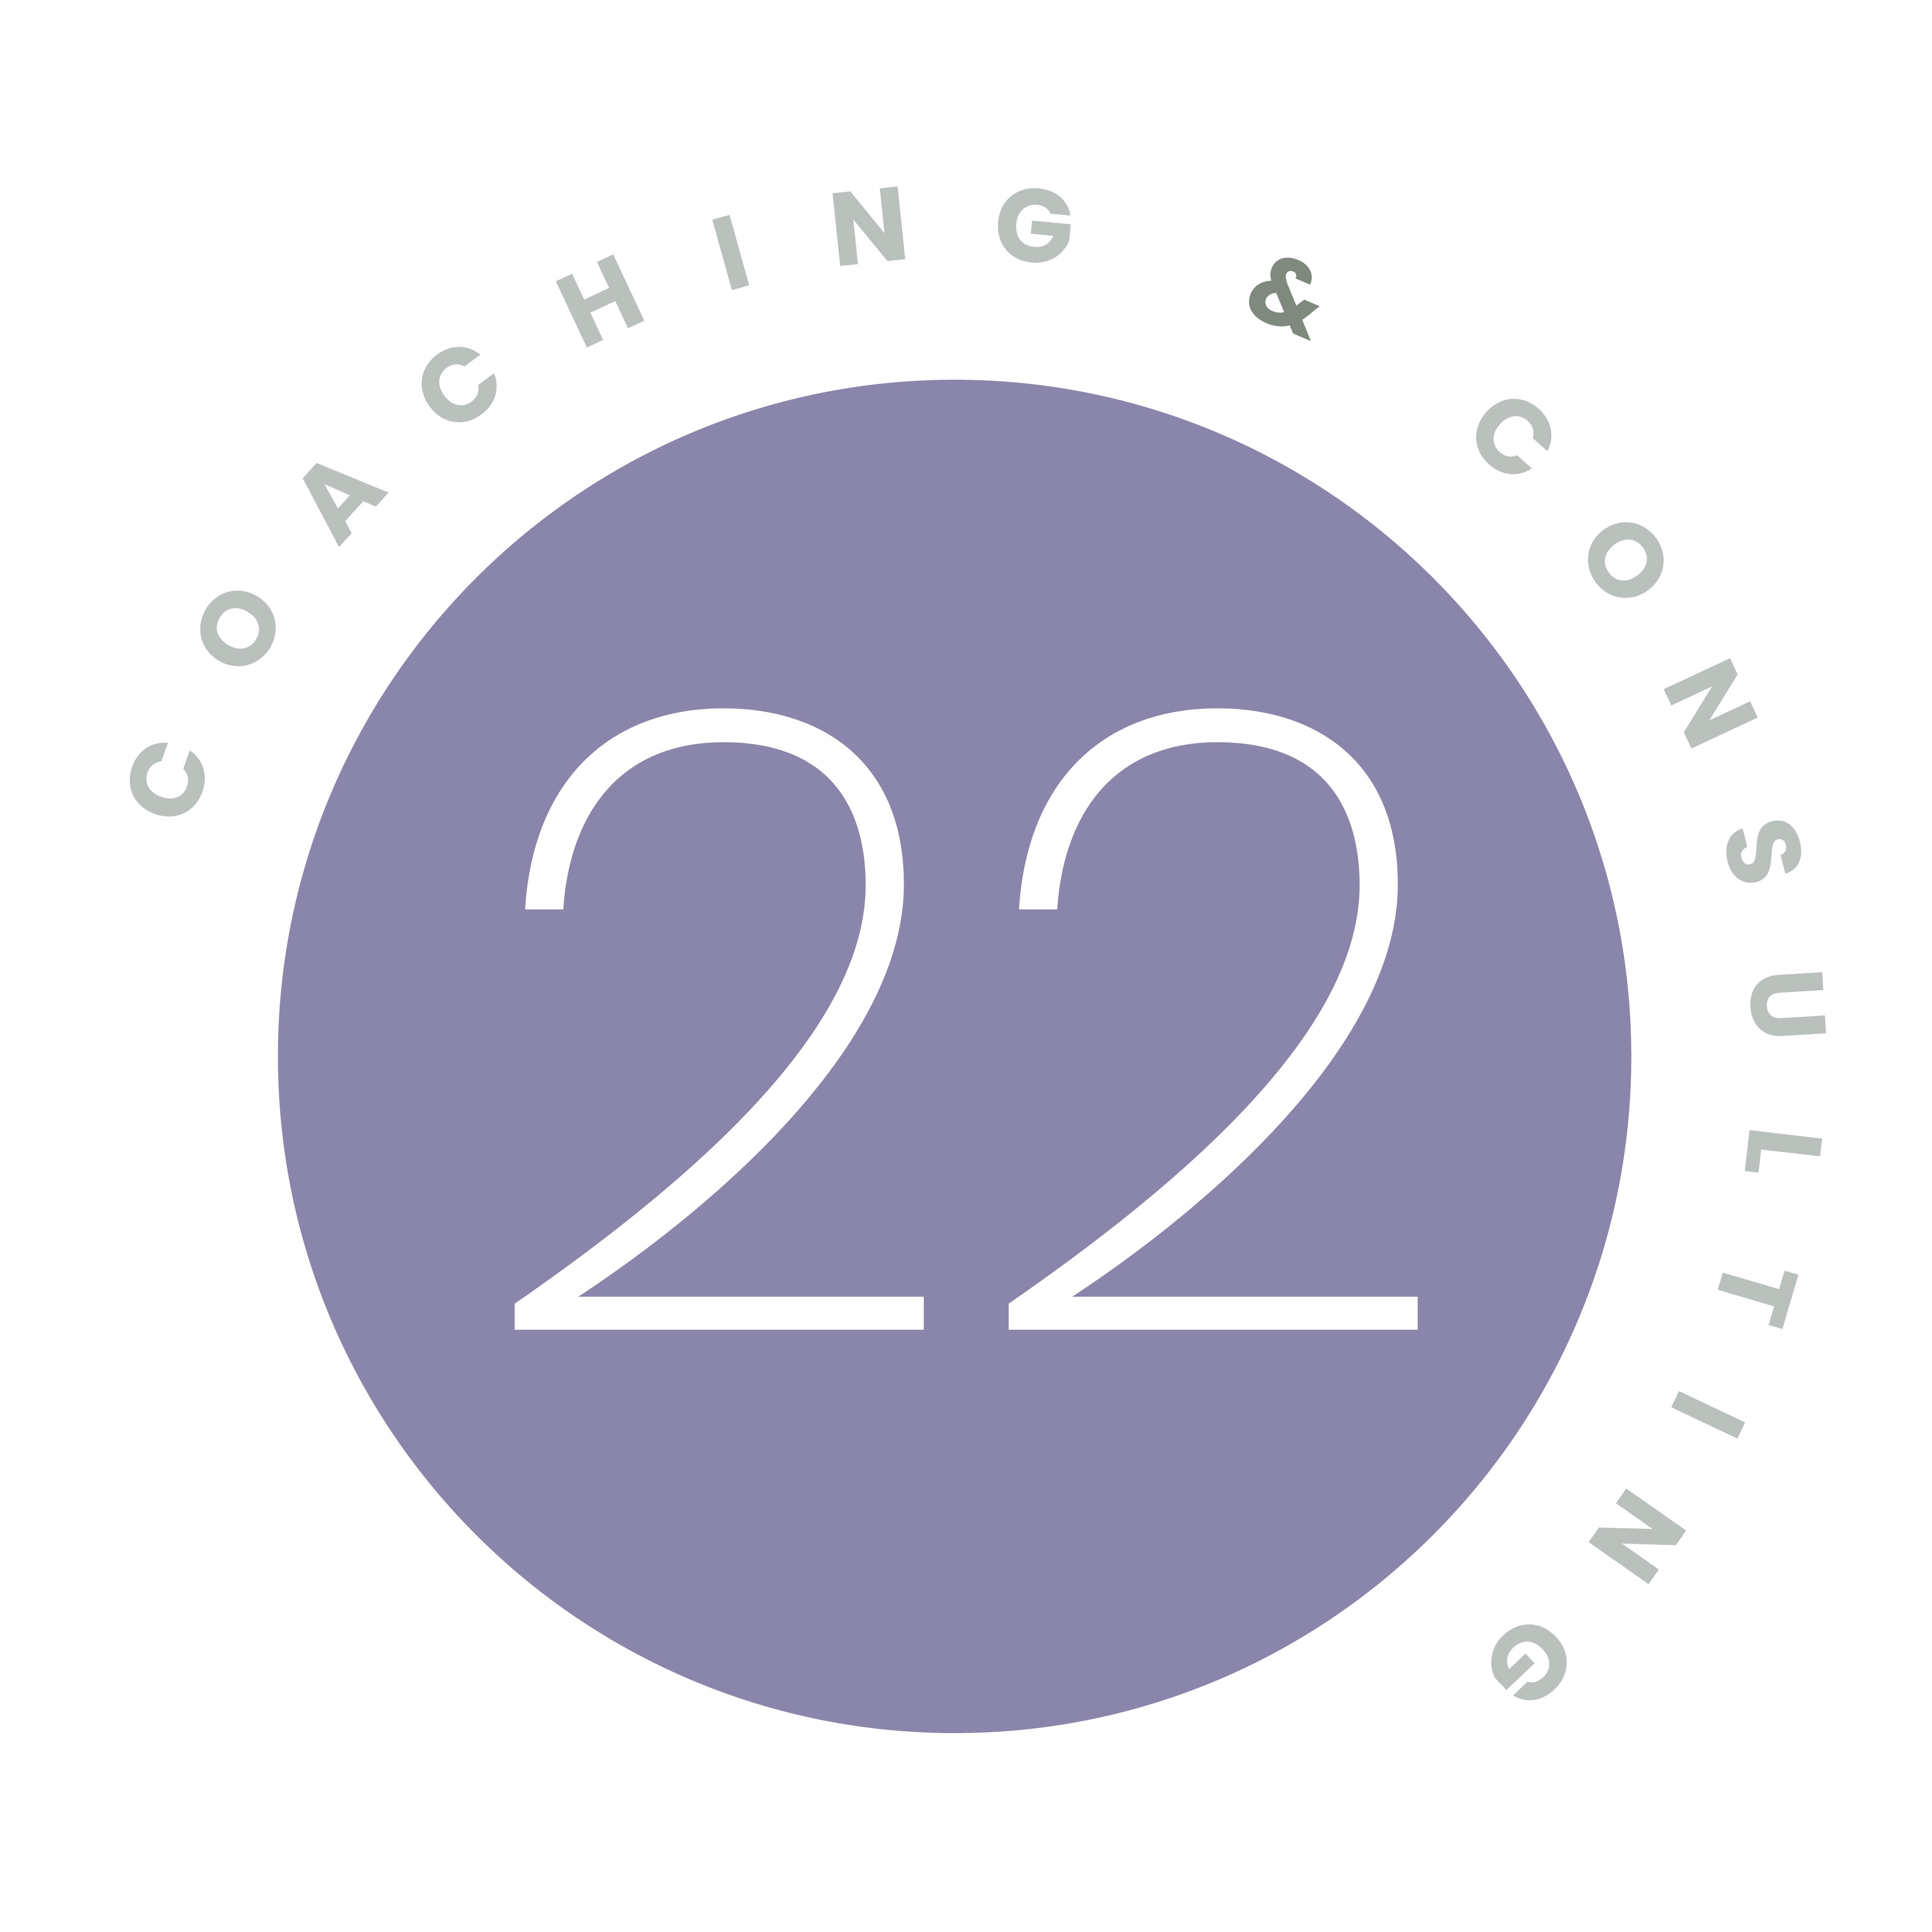 22 Coaching & Consulting Ltd